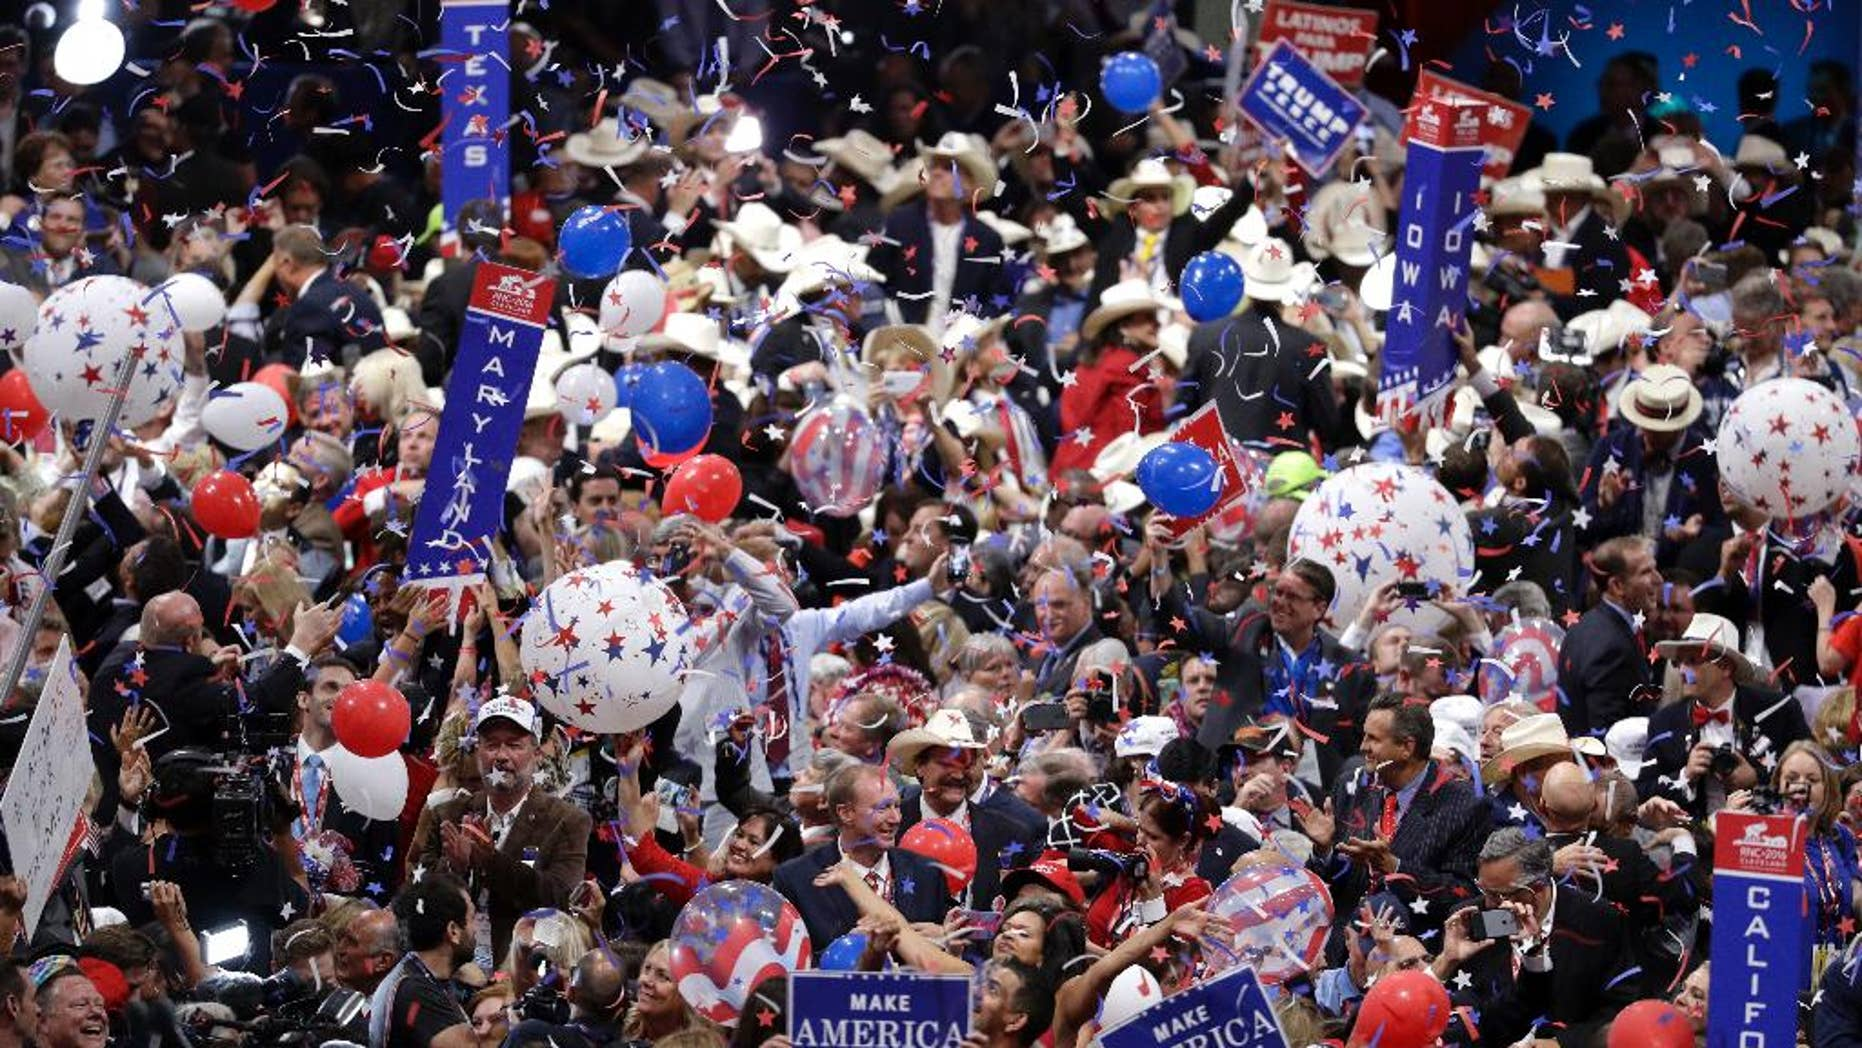 Delegates celebrate as balloons fall after the speech by Republican Presidential Candidate Donald Trump during the final day of the Republican National Convention in Cleveland, Thursday, July 21, 2016. (AP Photo/John Locher)